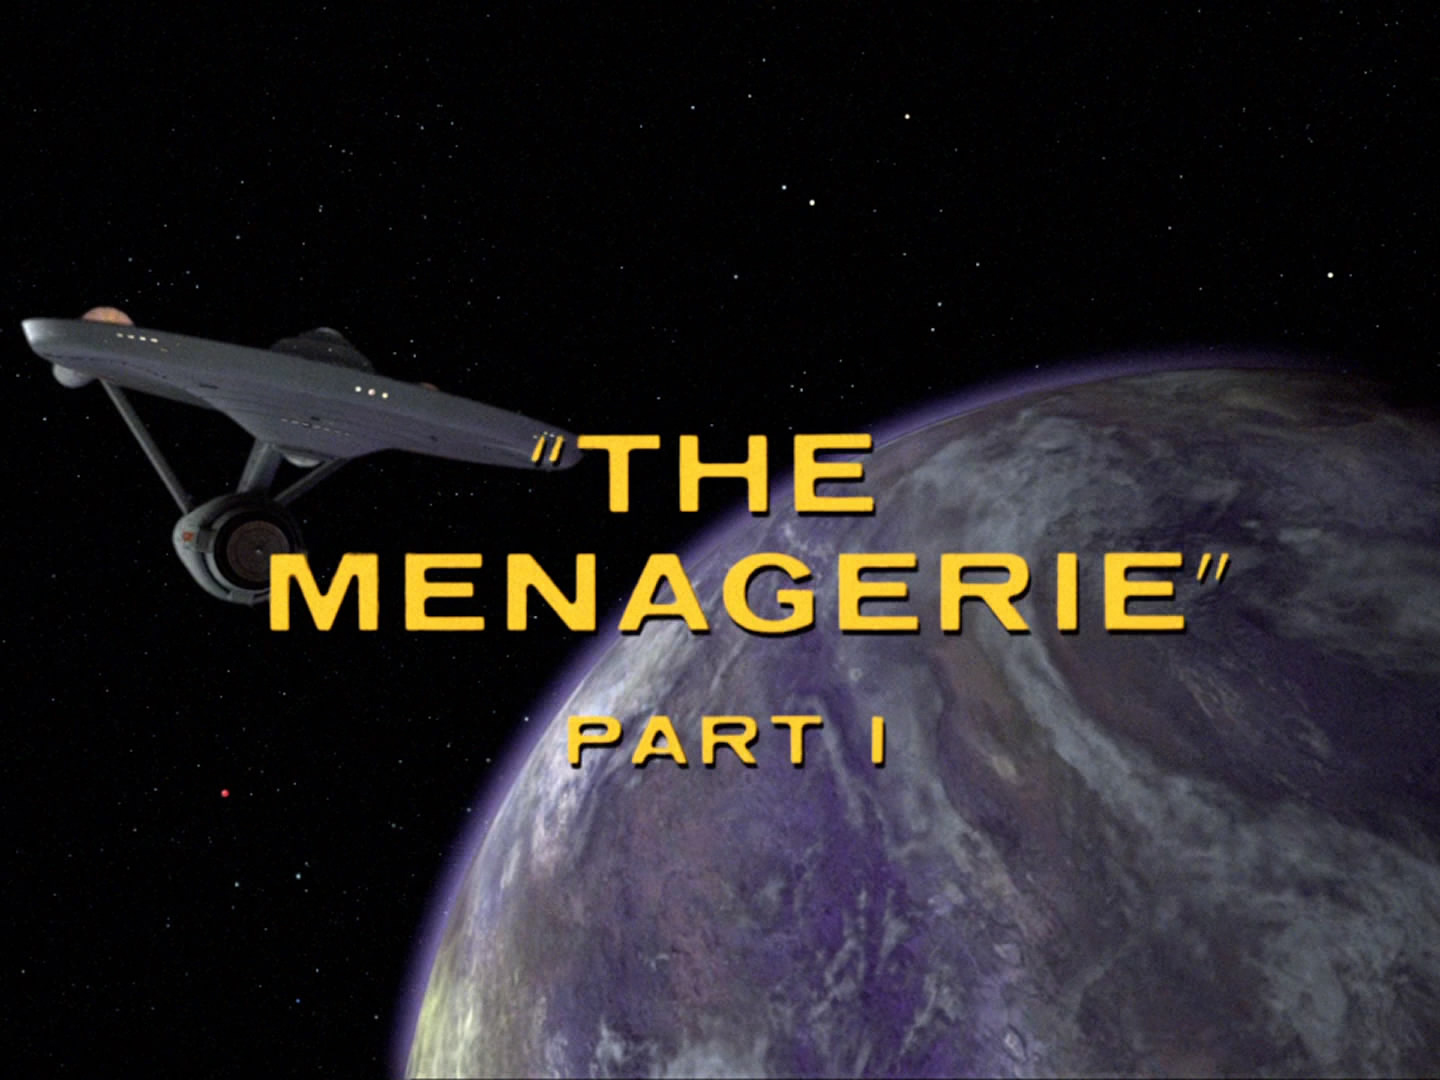 The Menagerie, Parts 1 & 2